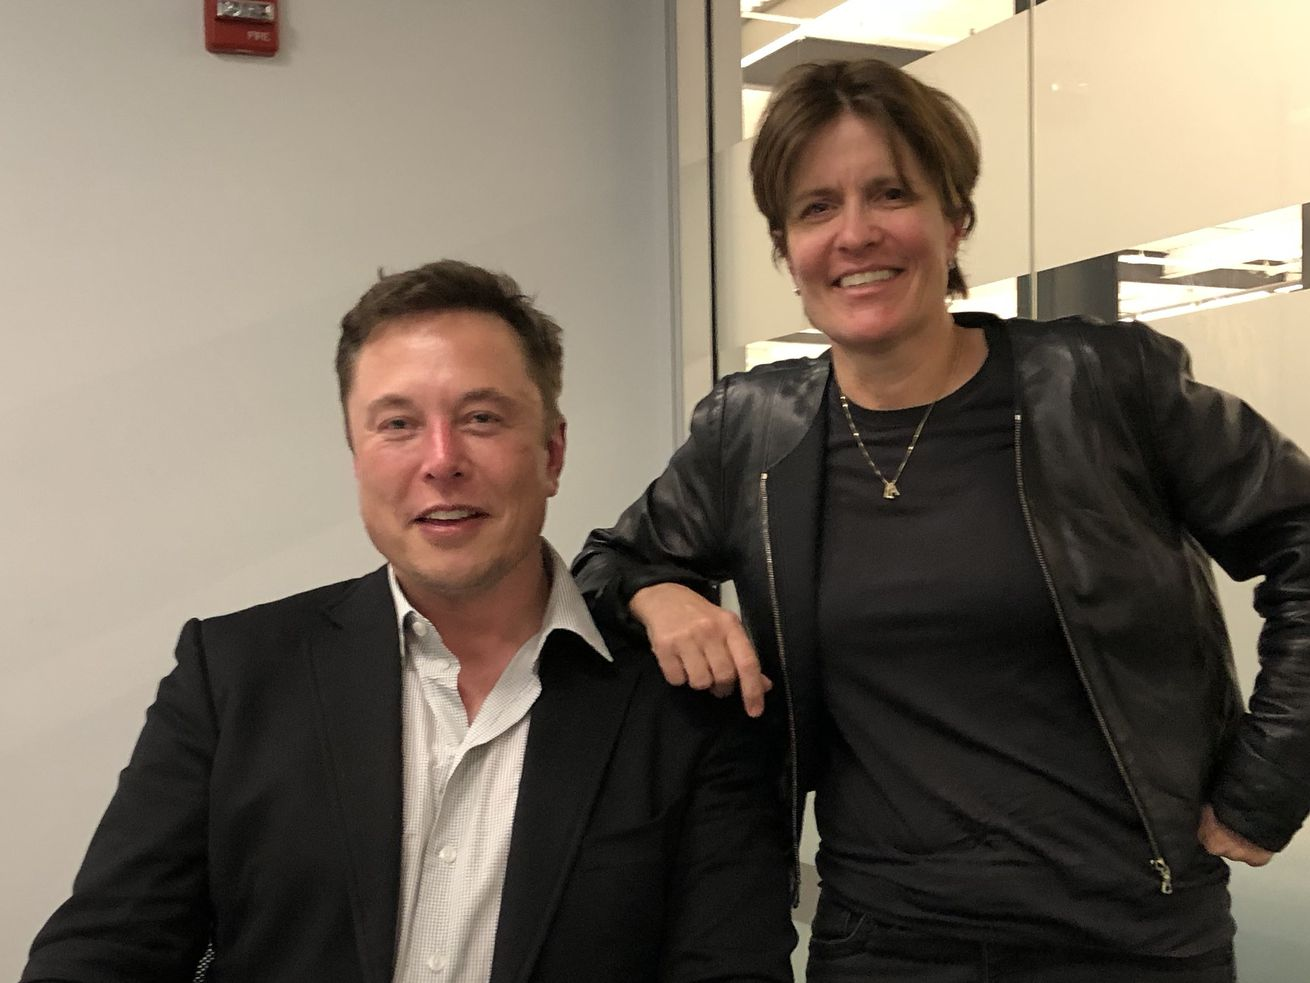 Full Q&A: Tesla and SpaceX CEO Elon Musk on Recode Decode